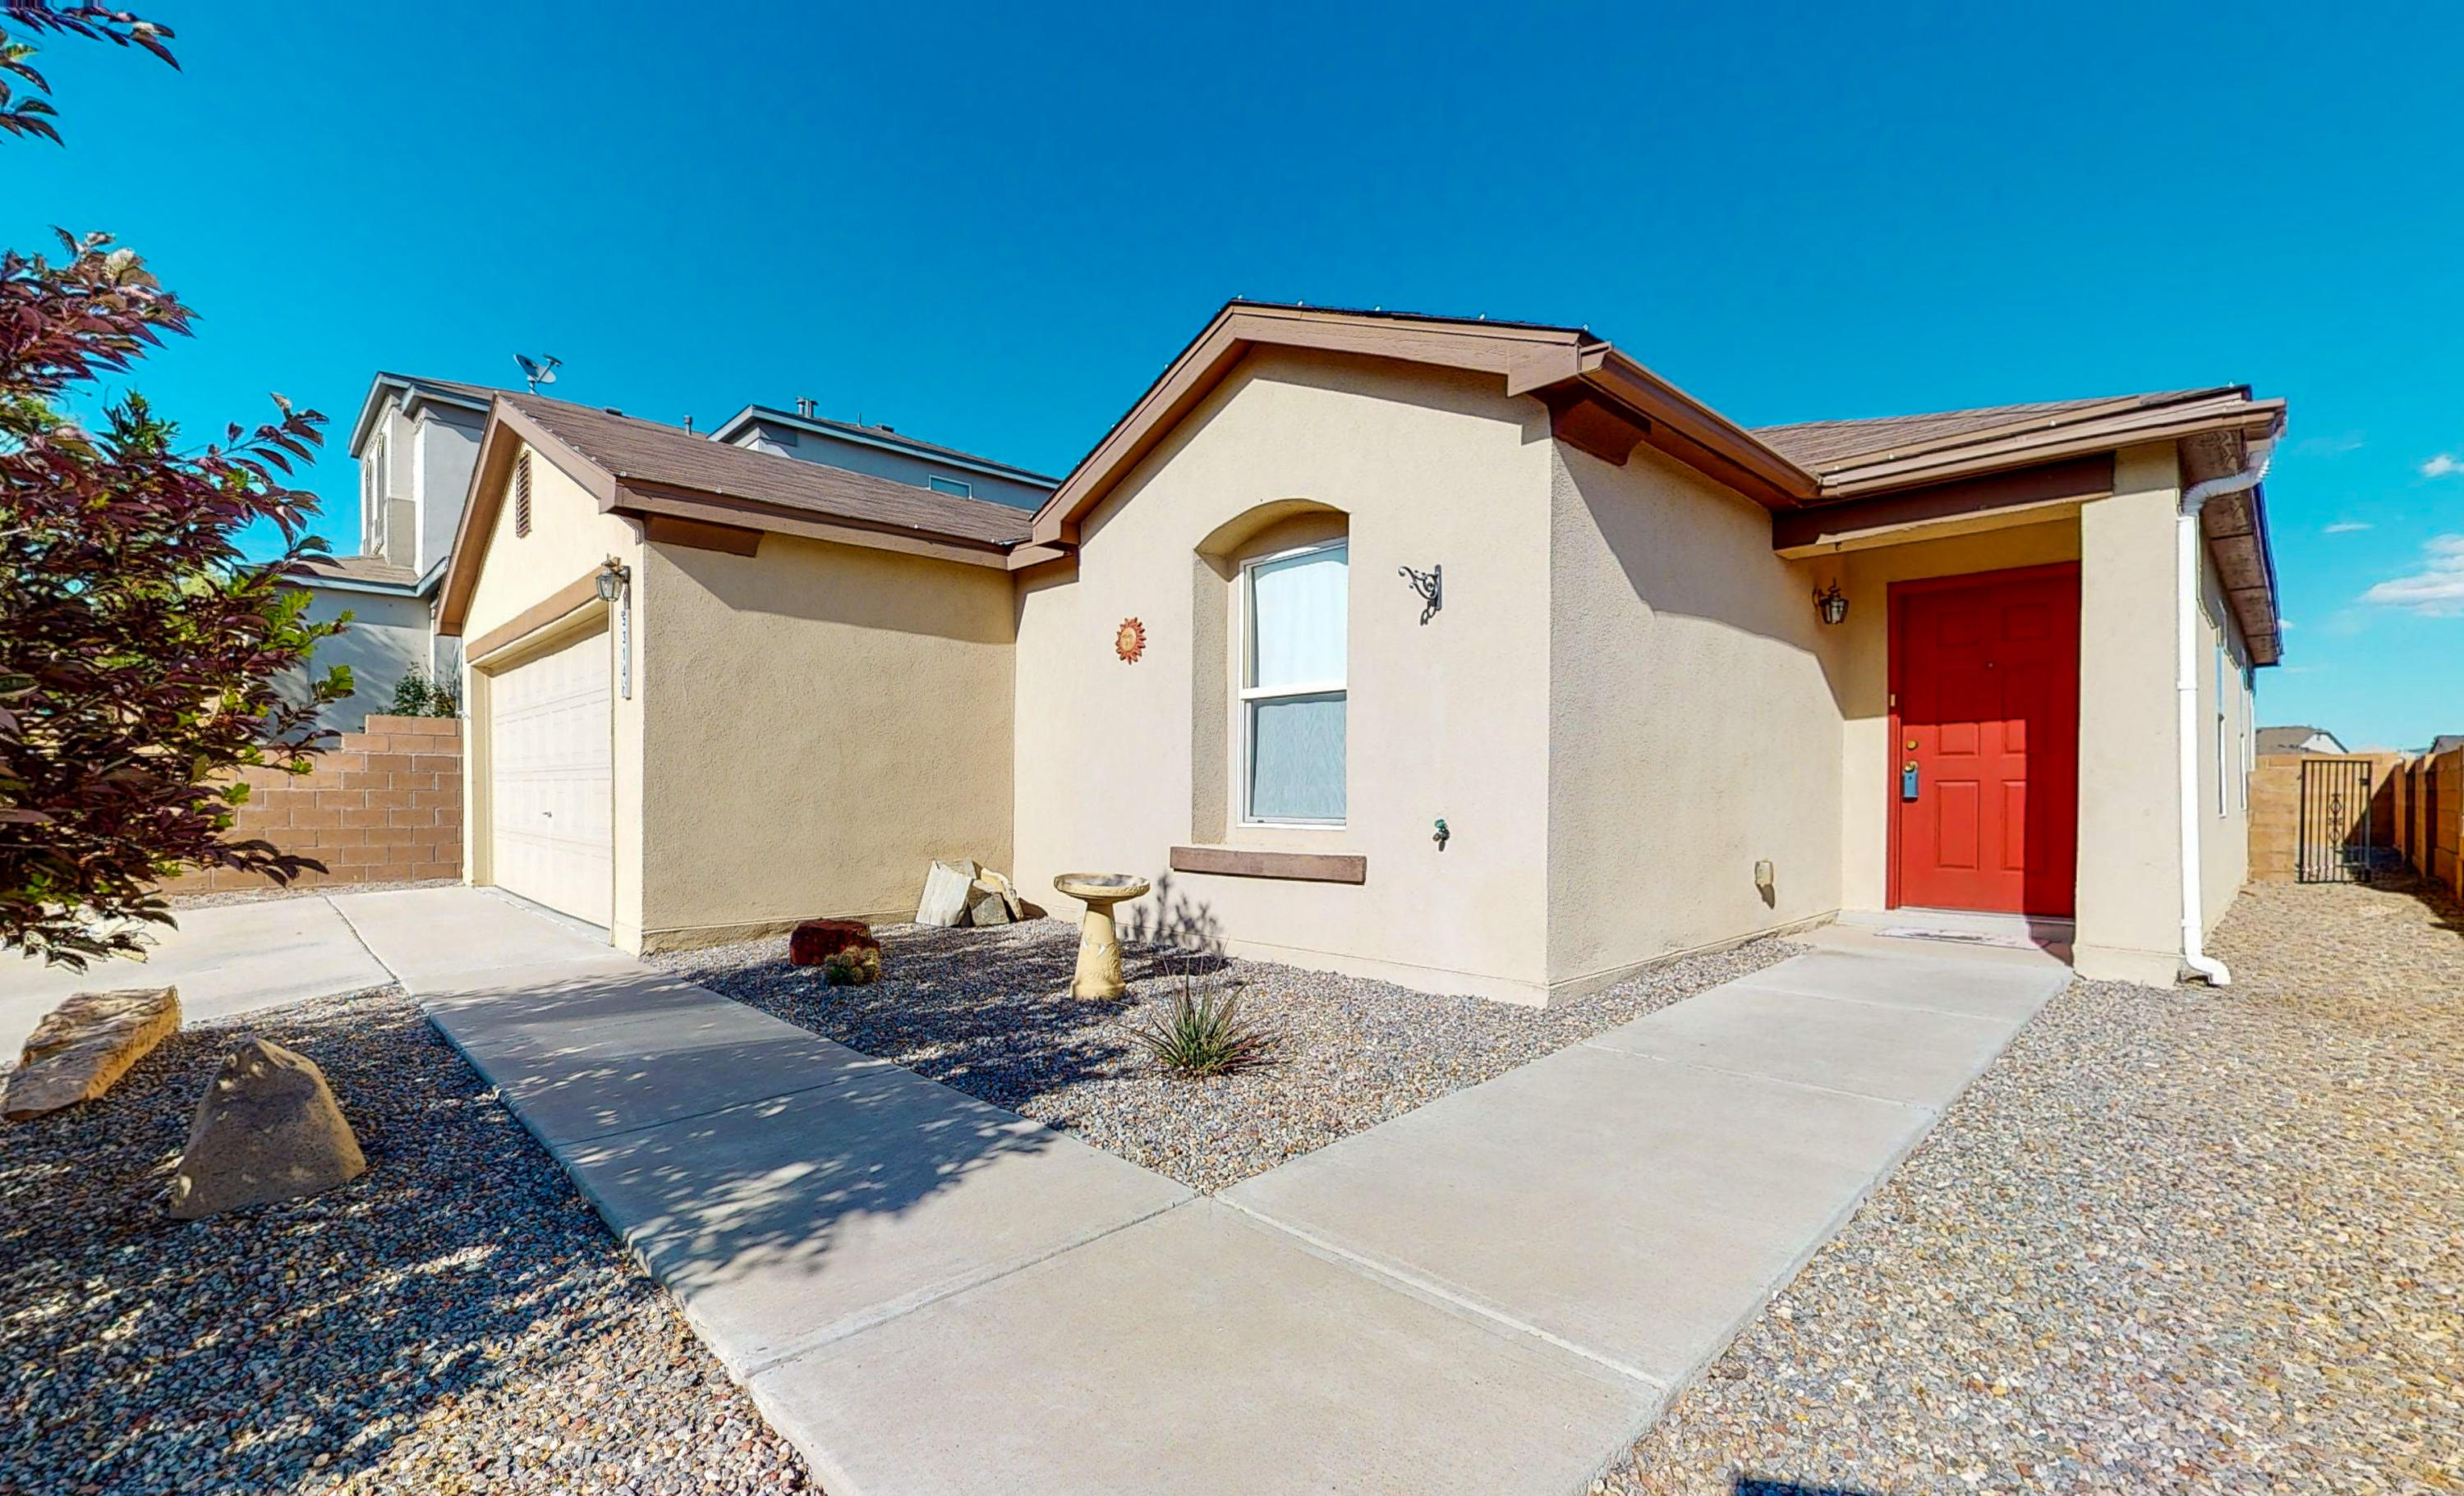 Ready for it's new owner!  Enchanted Hills cutie with 3 bedrooms, 2 baths and 1619 square feet.  Open floor plan with tile floors and new carpet in bedrooms.  All appliances stay including washer and dryer!  New REFRIGERATED air installed July 2019.  Easy care backyard with views of the Sandia Mountains! Close to 550 Access, Bernalillo, Golf, and resort casinos! Schedule a private showing or take a virtual walkthrough tour today!